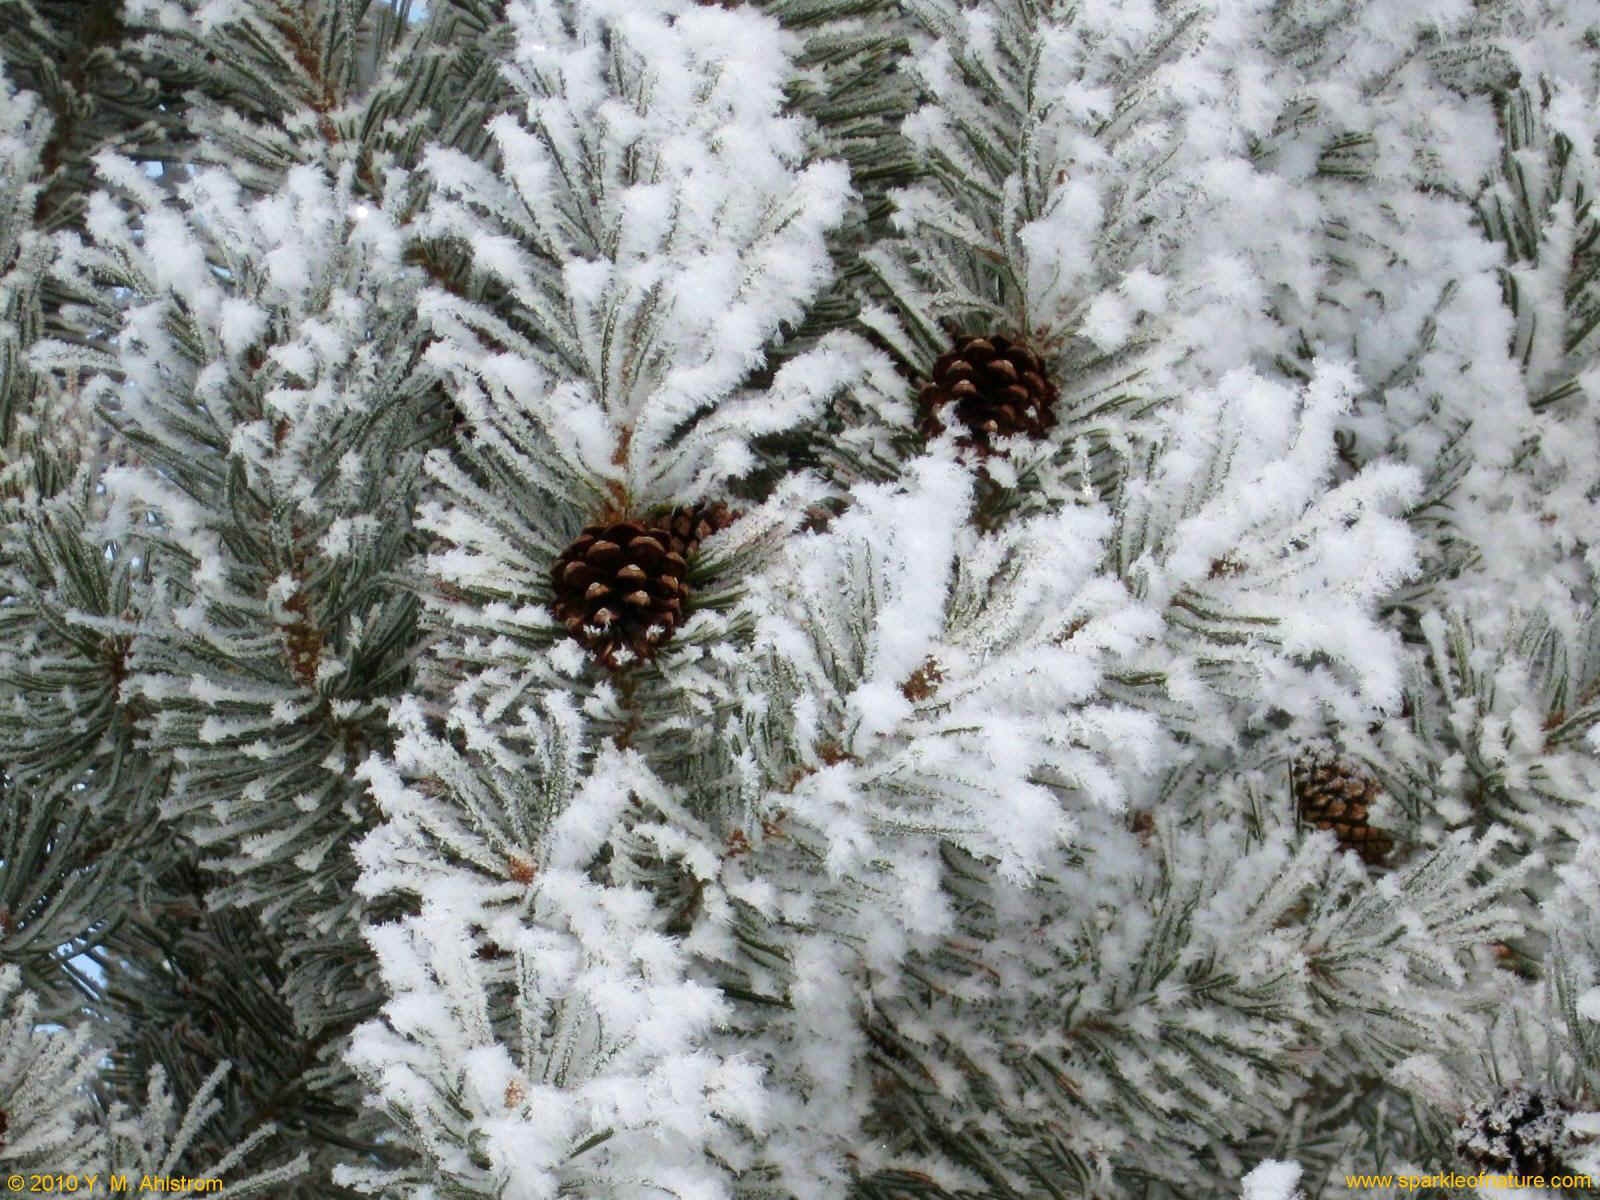 22090 winter pine 1600x1200.jpg (364503 bytes)